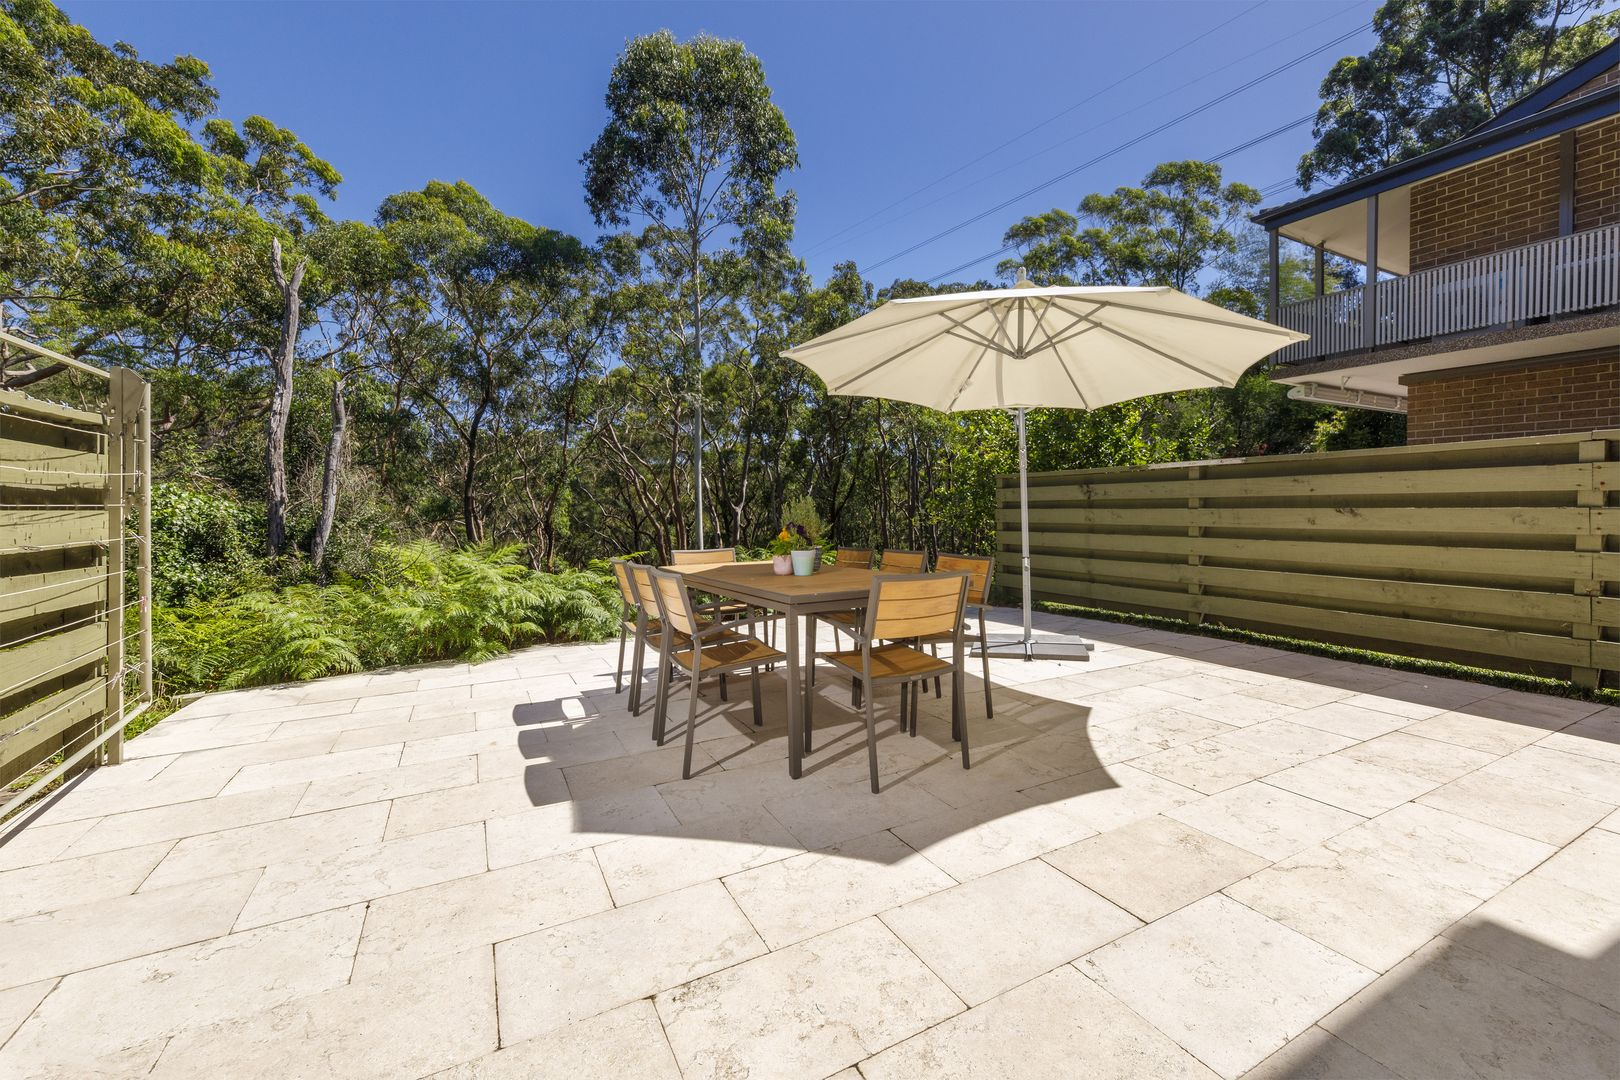 15/6 Tuckwell Place, Macquarie Park NSW 2113, Image 0